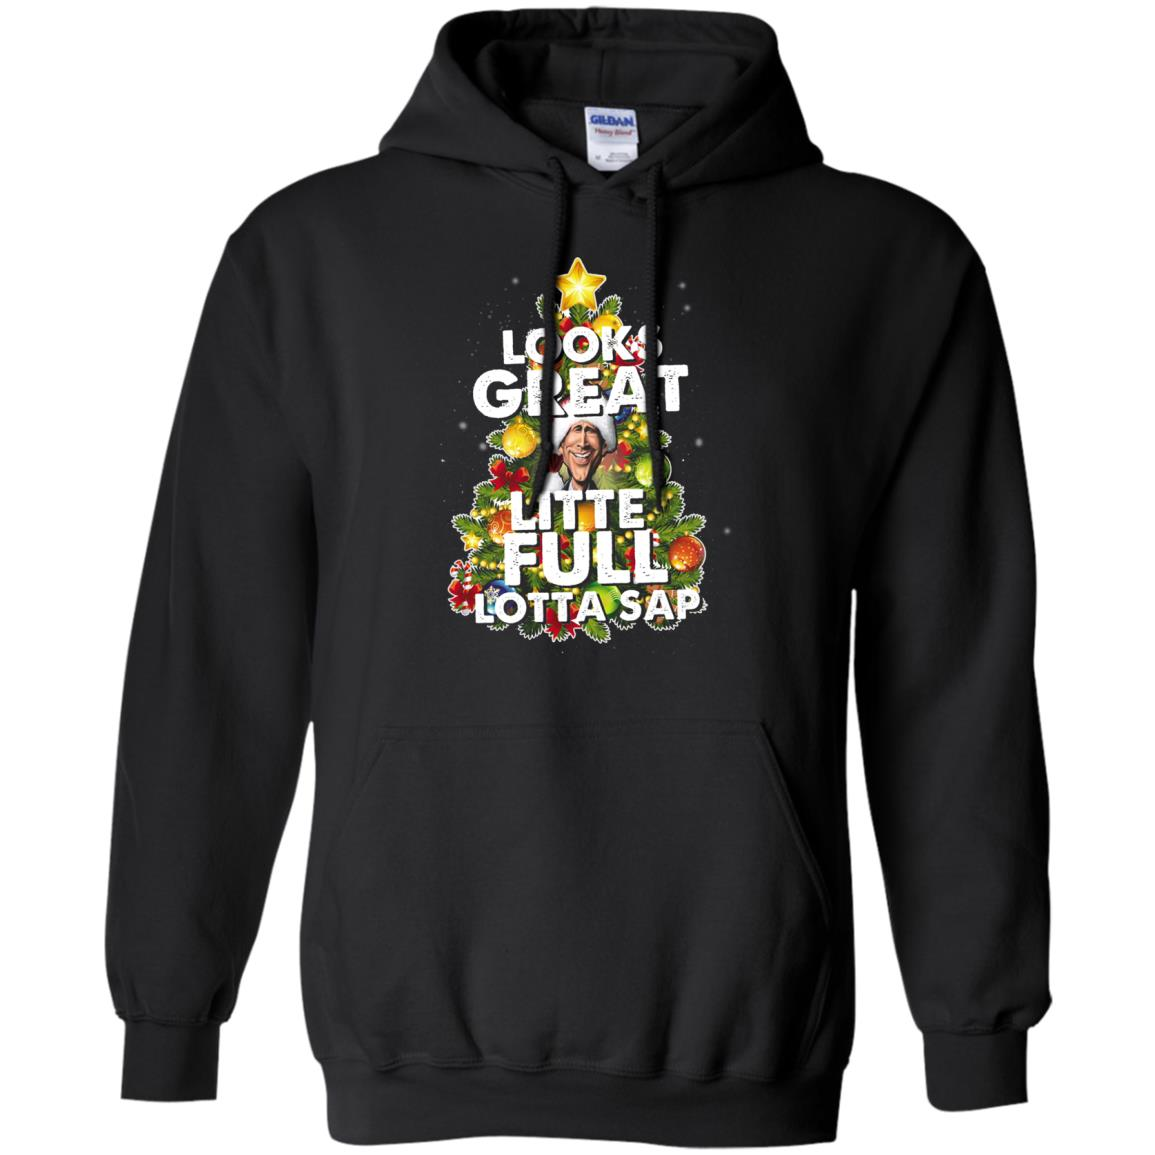 image 2485 - Looks great little full lotta sap ugly Christmas sweater, hoodie